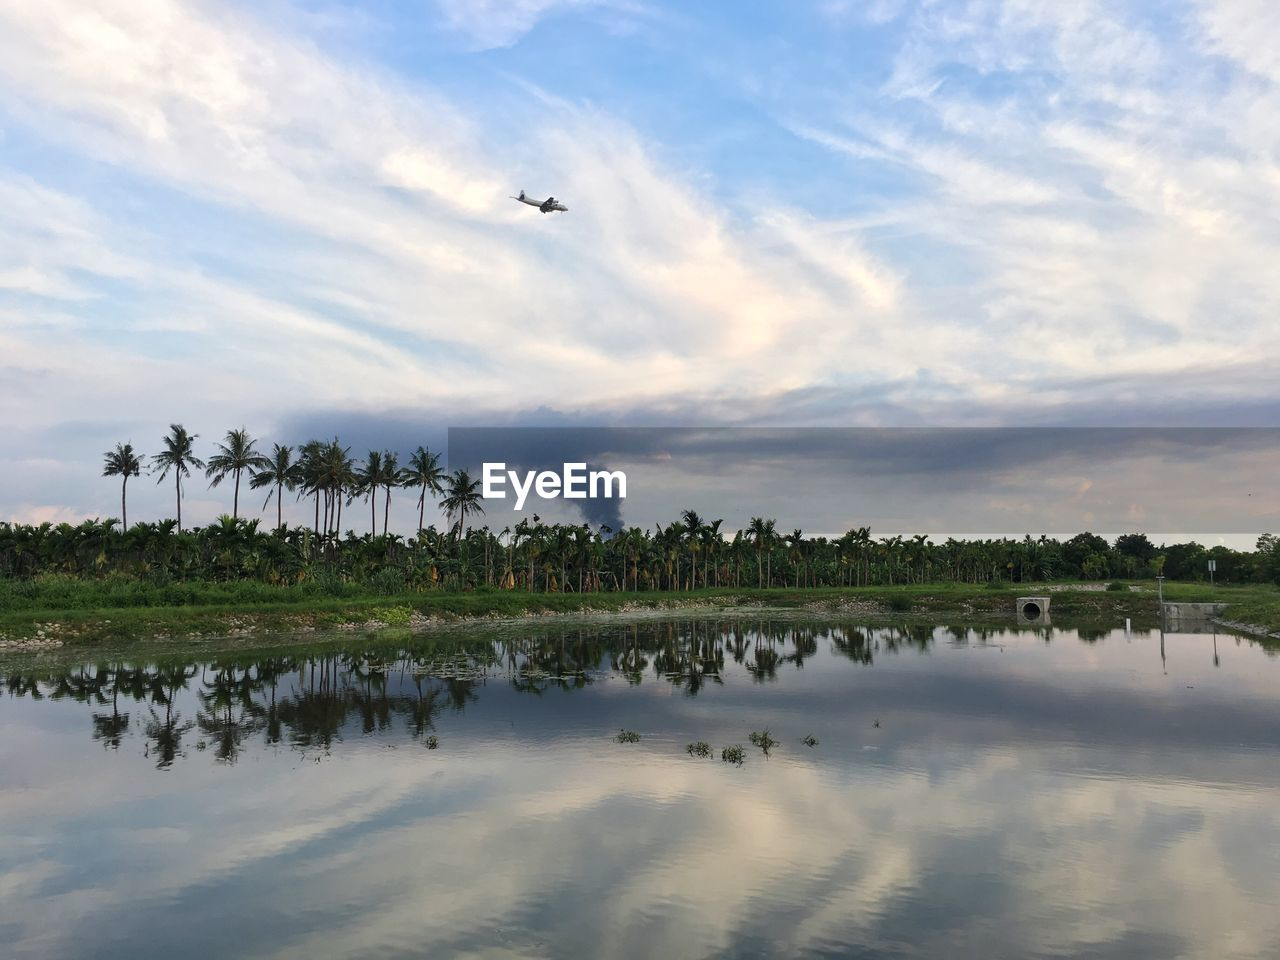 sky, water, cloud - sky, reflection, beauty in nature, scenics - nature, plant, waterfront, nature, flying, tranquility, tree, lake, tranquil scene, no people, animal themes, animal, growth, day, outdoors